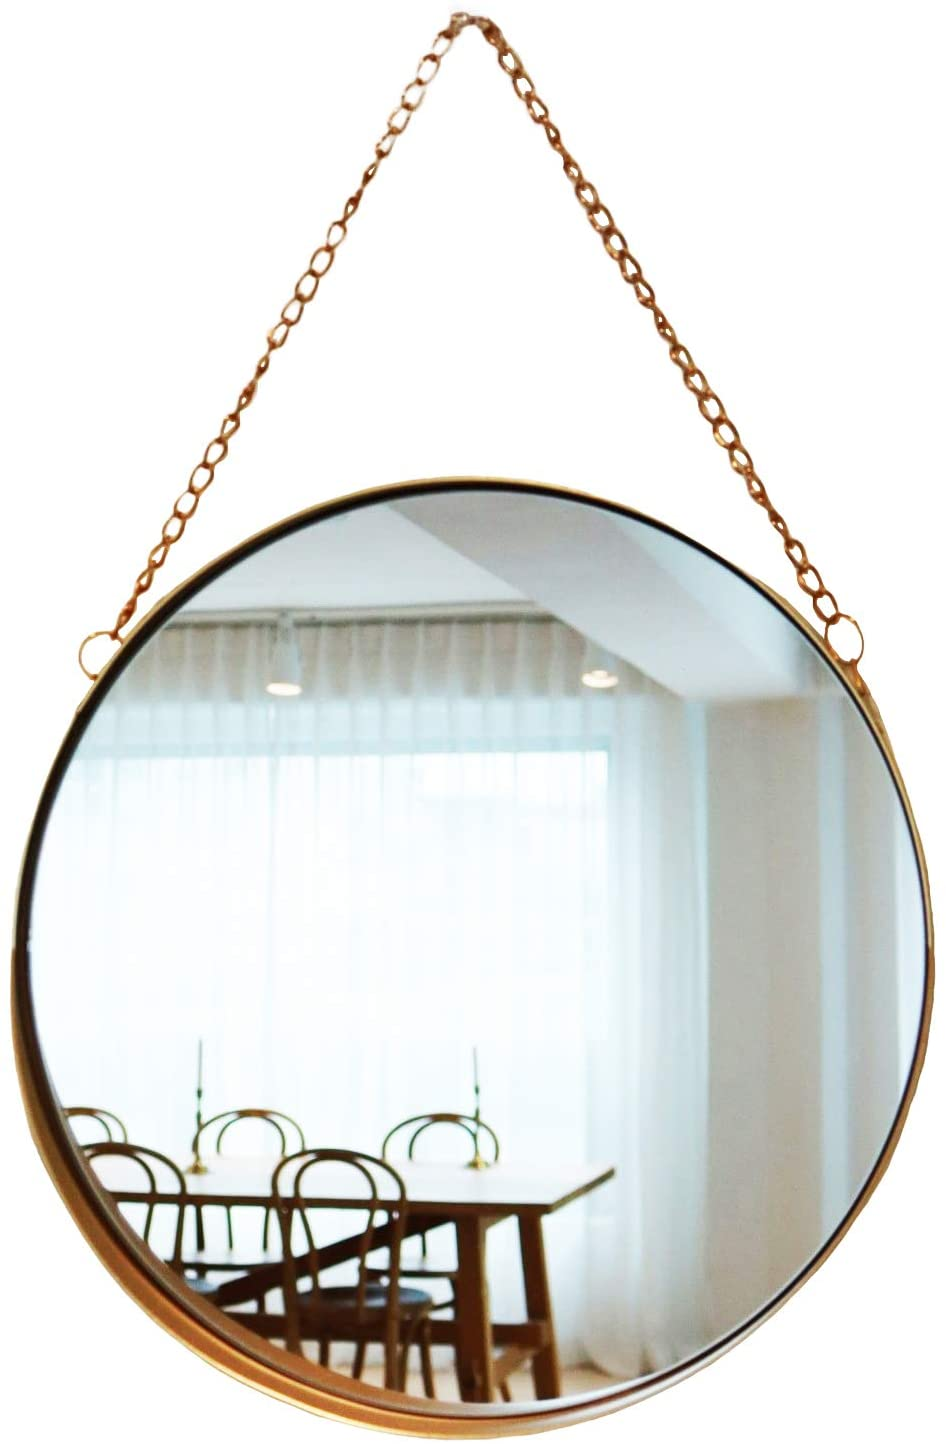 April Box Round Gold Metallic Wall Mirror, 10-Inch